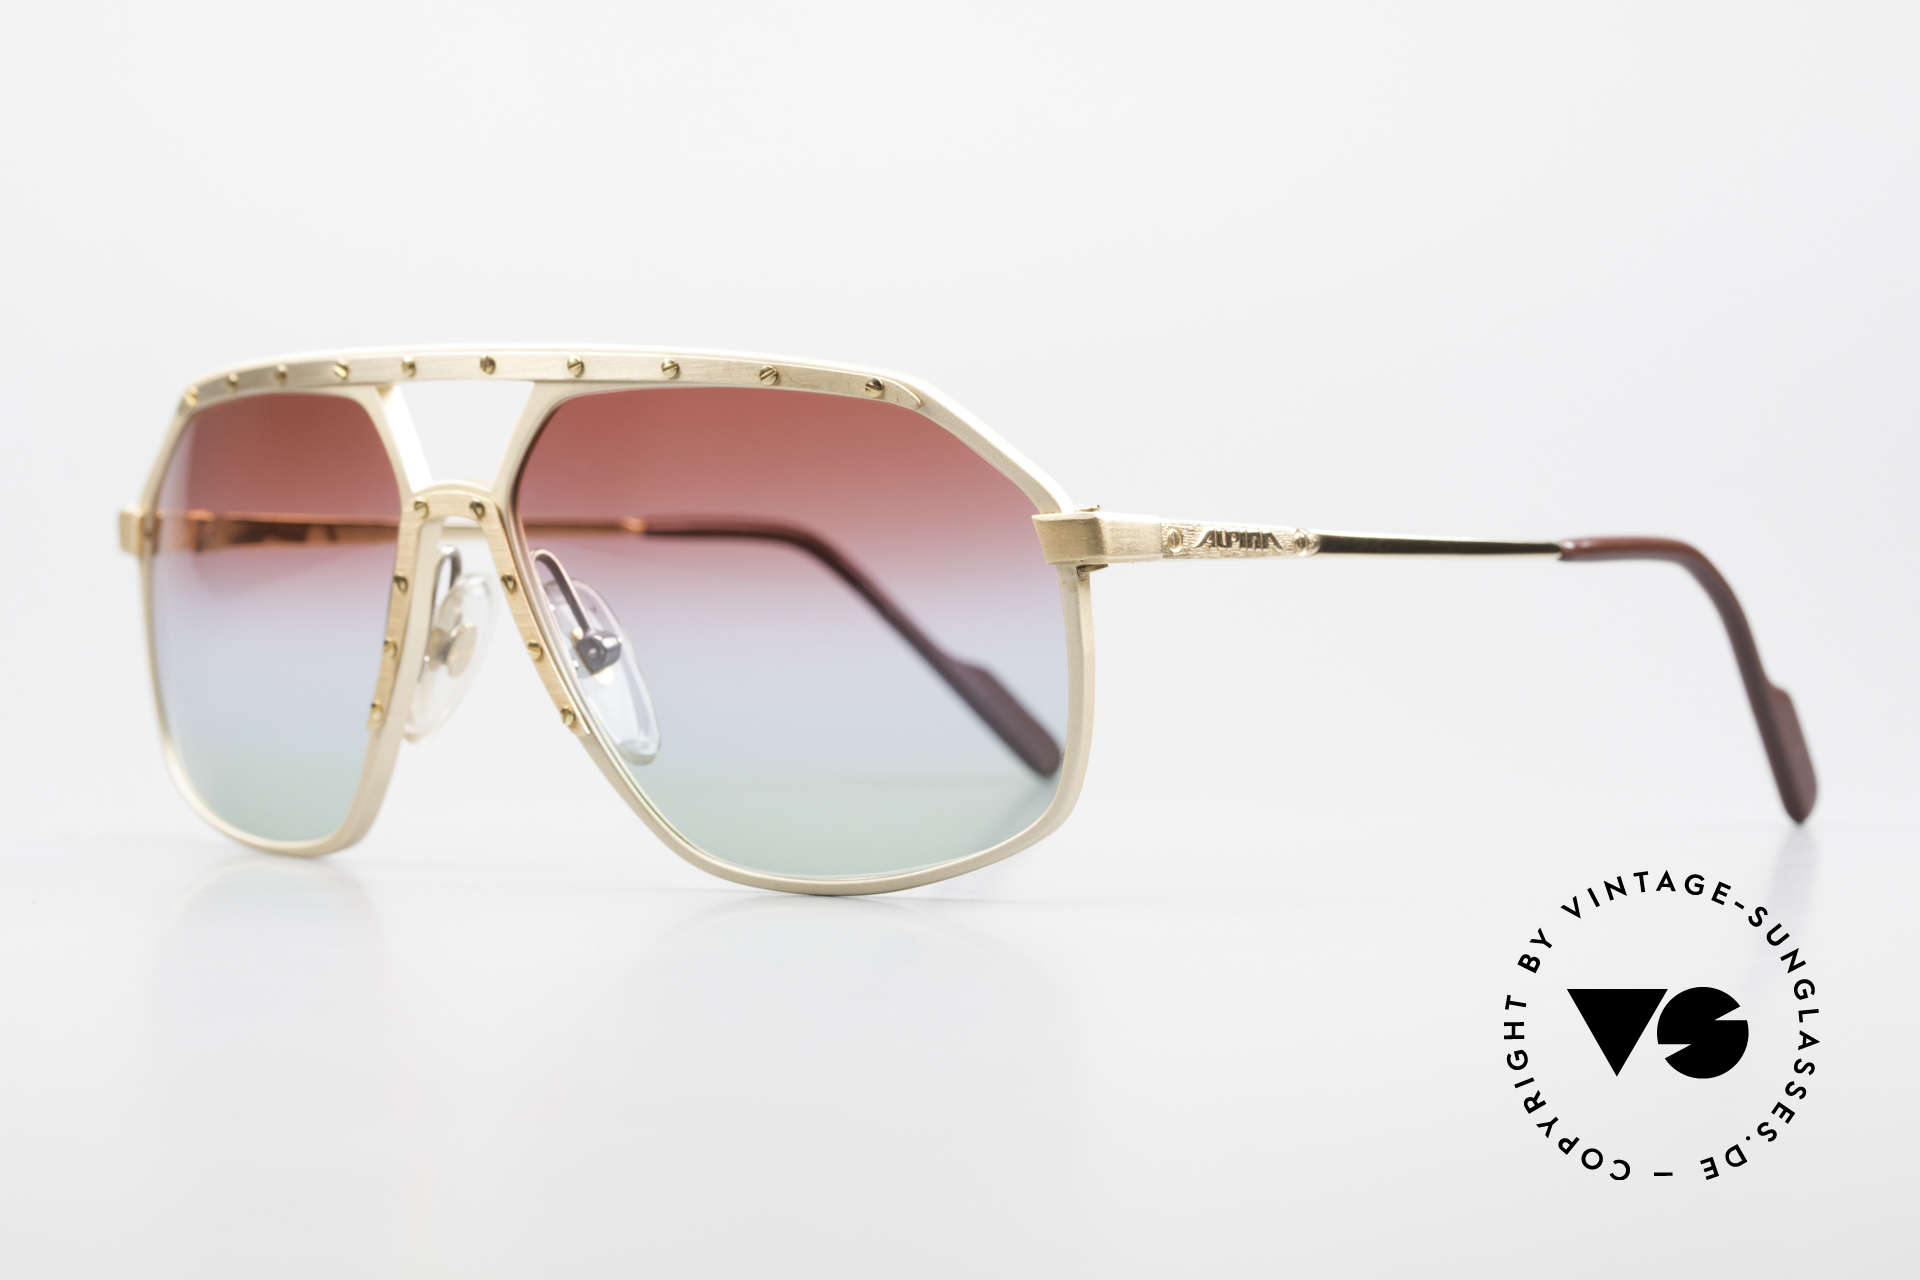 Alpina M6 West Germany Sunglasses 80's, with new customized tricolored sun lenses, fancy, Made for Men and Women